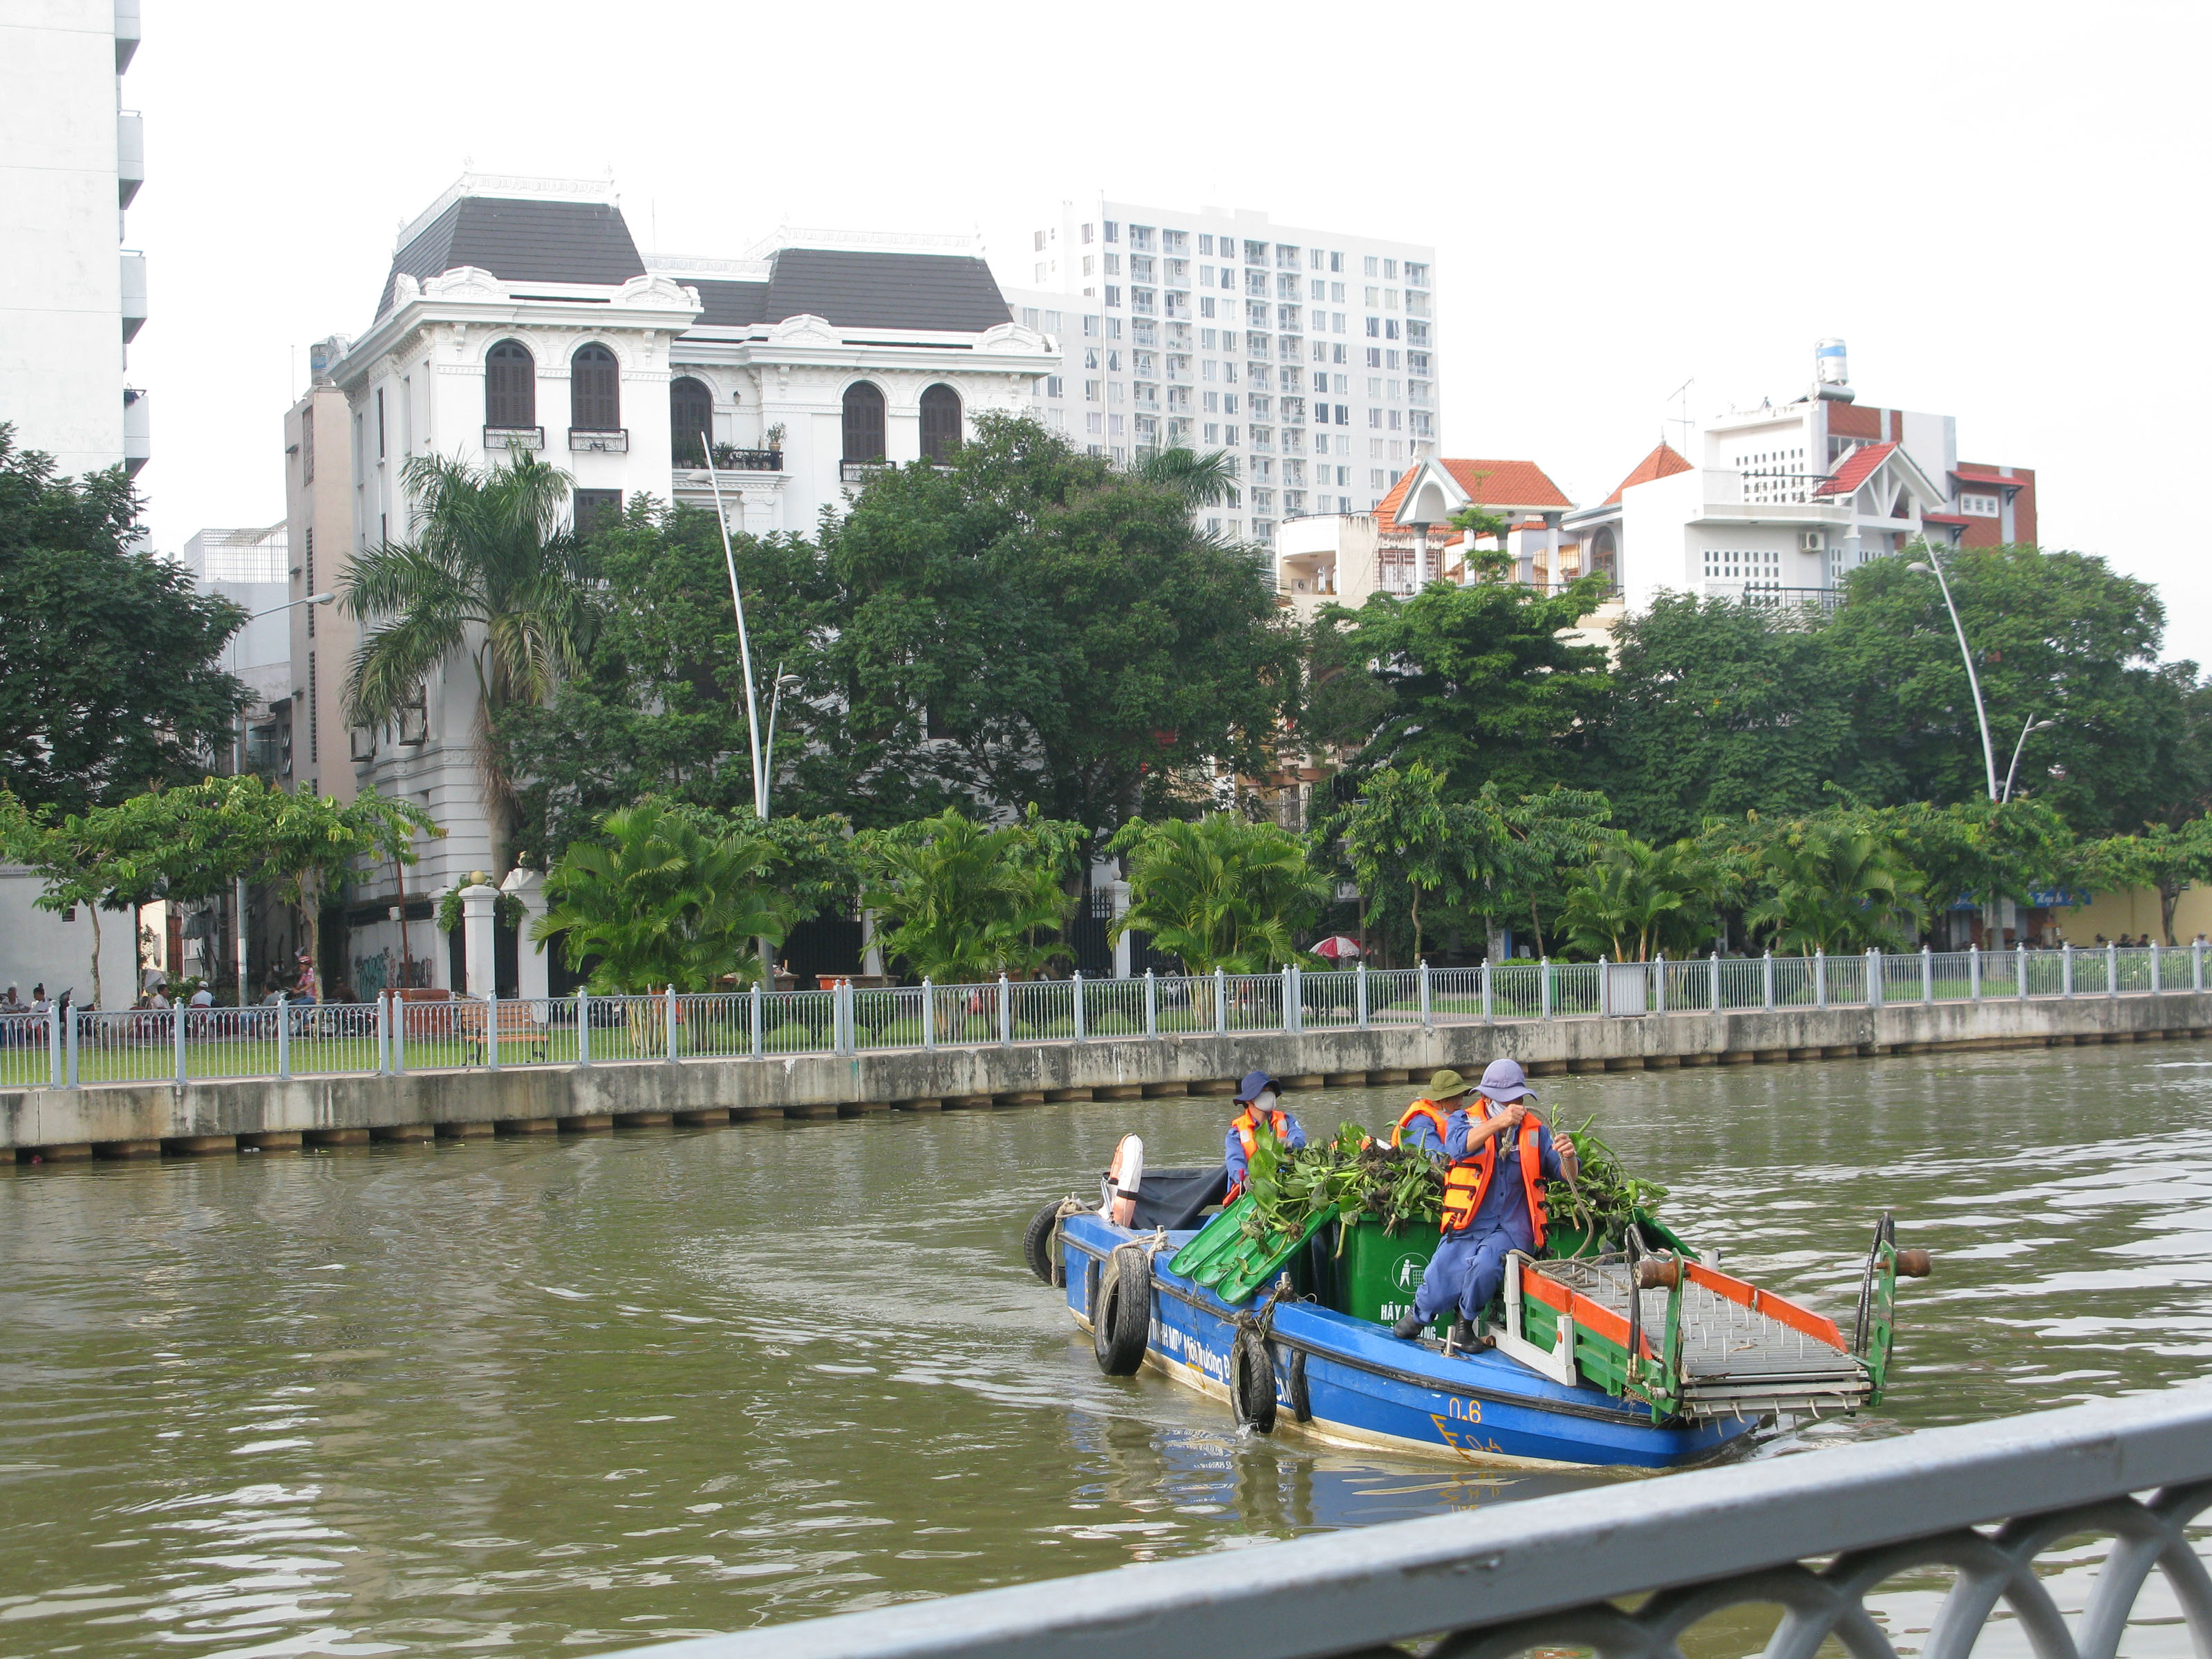 The resurrection of Nhieu Loc-Thi Nghe: How HCMC brought the blackwater canal back from the dead